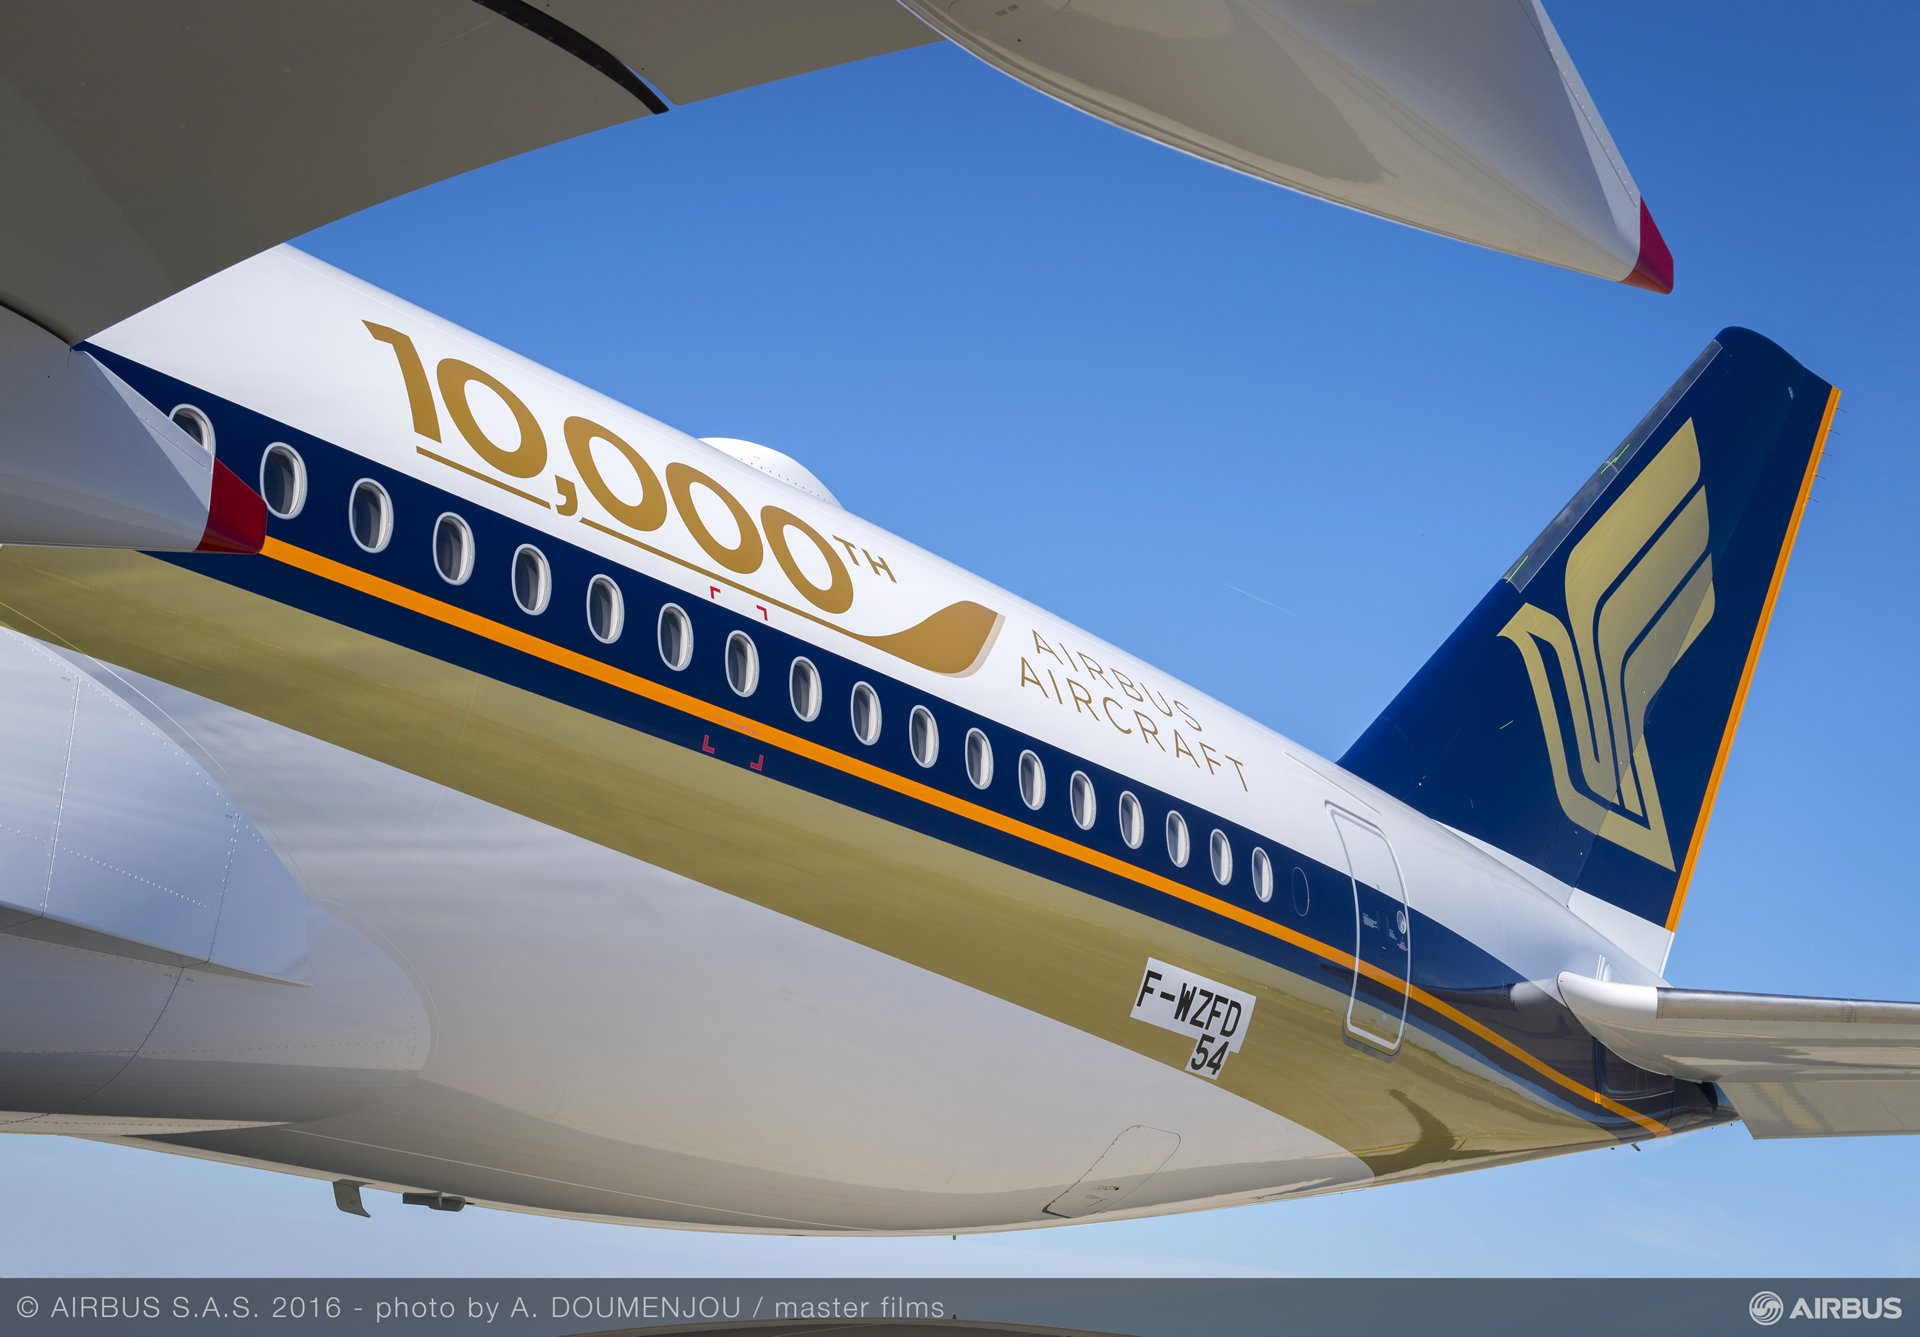 Airbus' 10,000th delivery_2